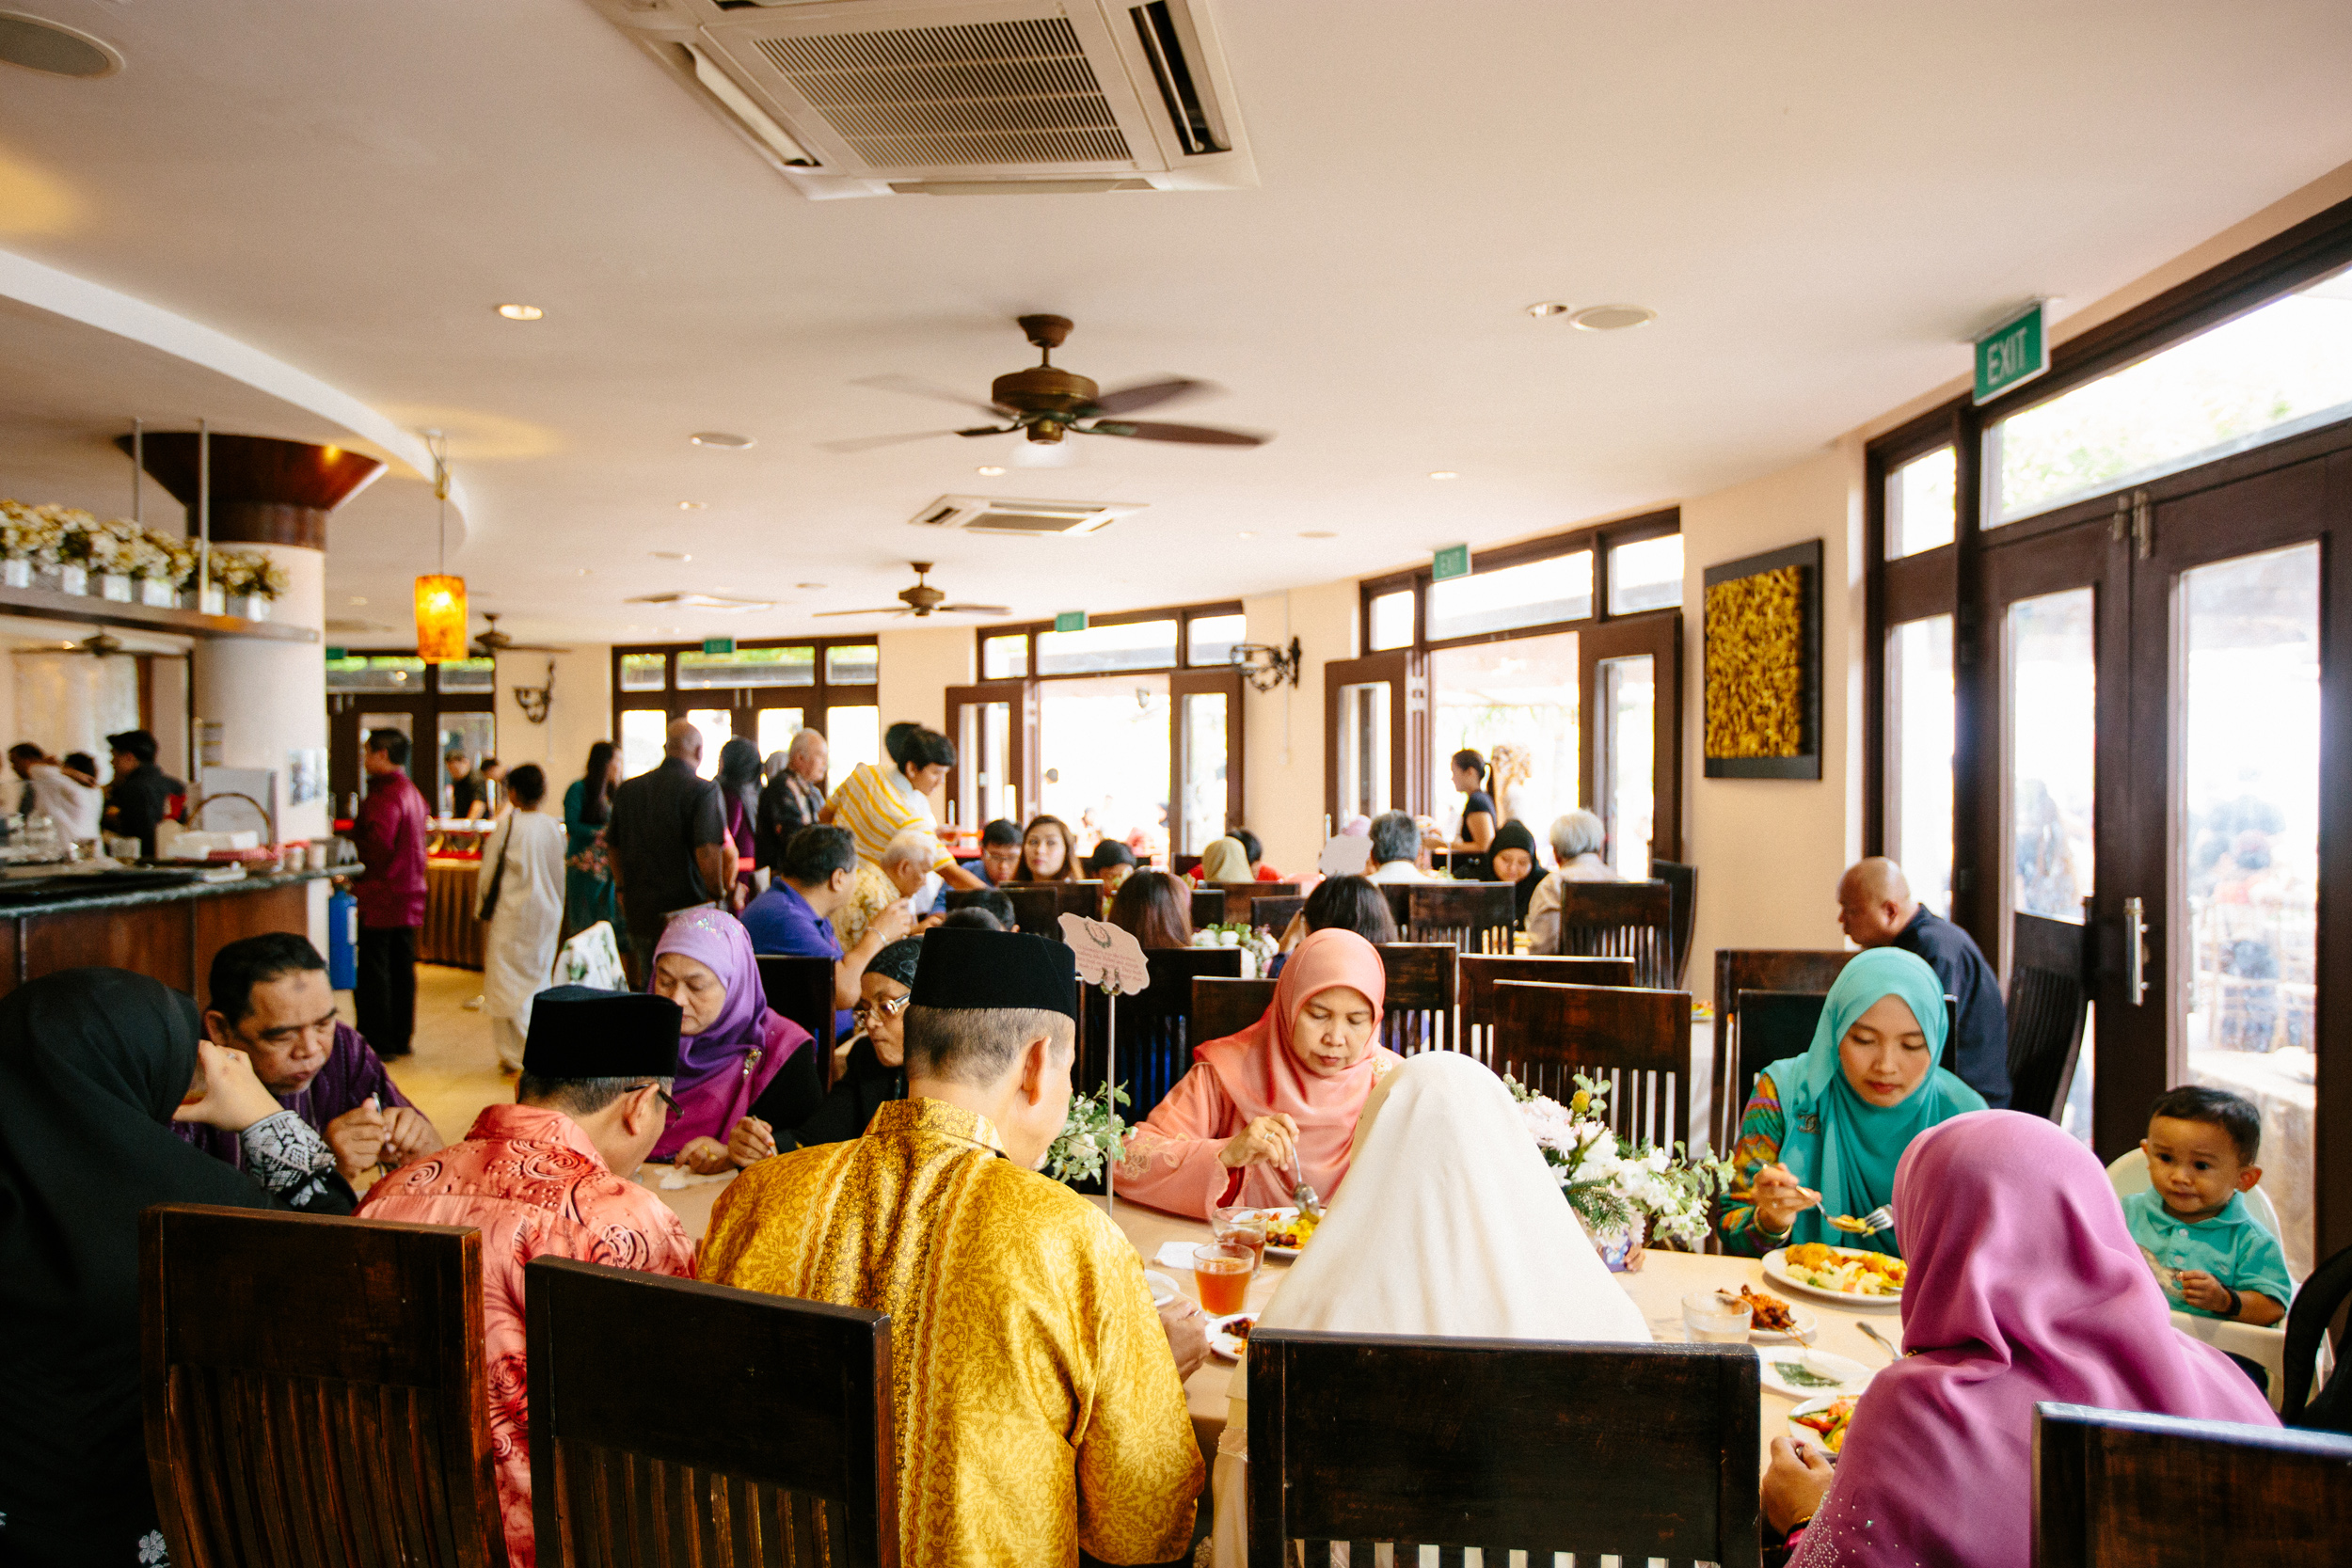 singapore-wedding-photographer-wemadethese-aisyah-helmi-35.jpg